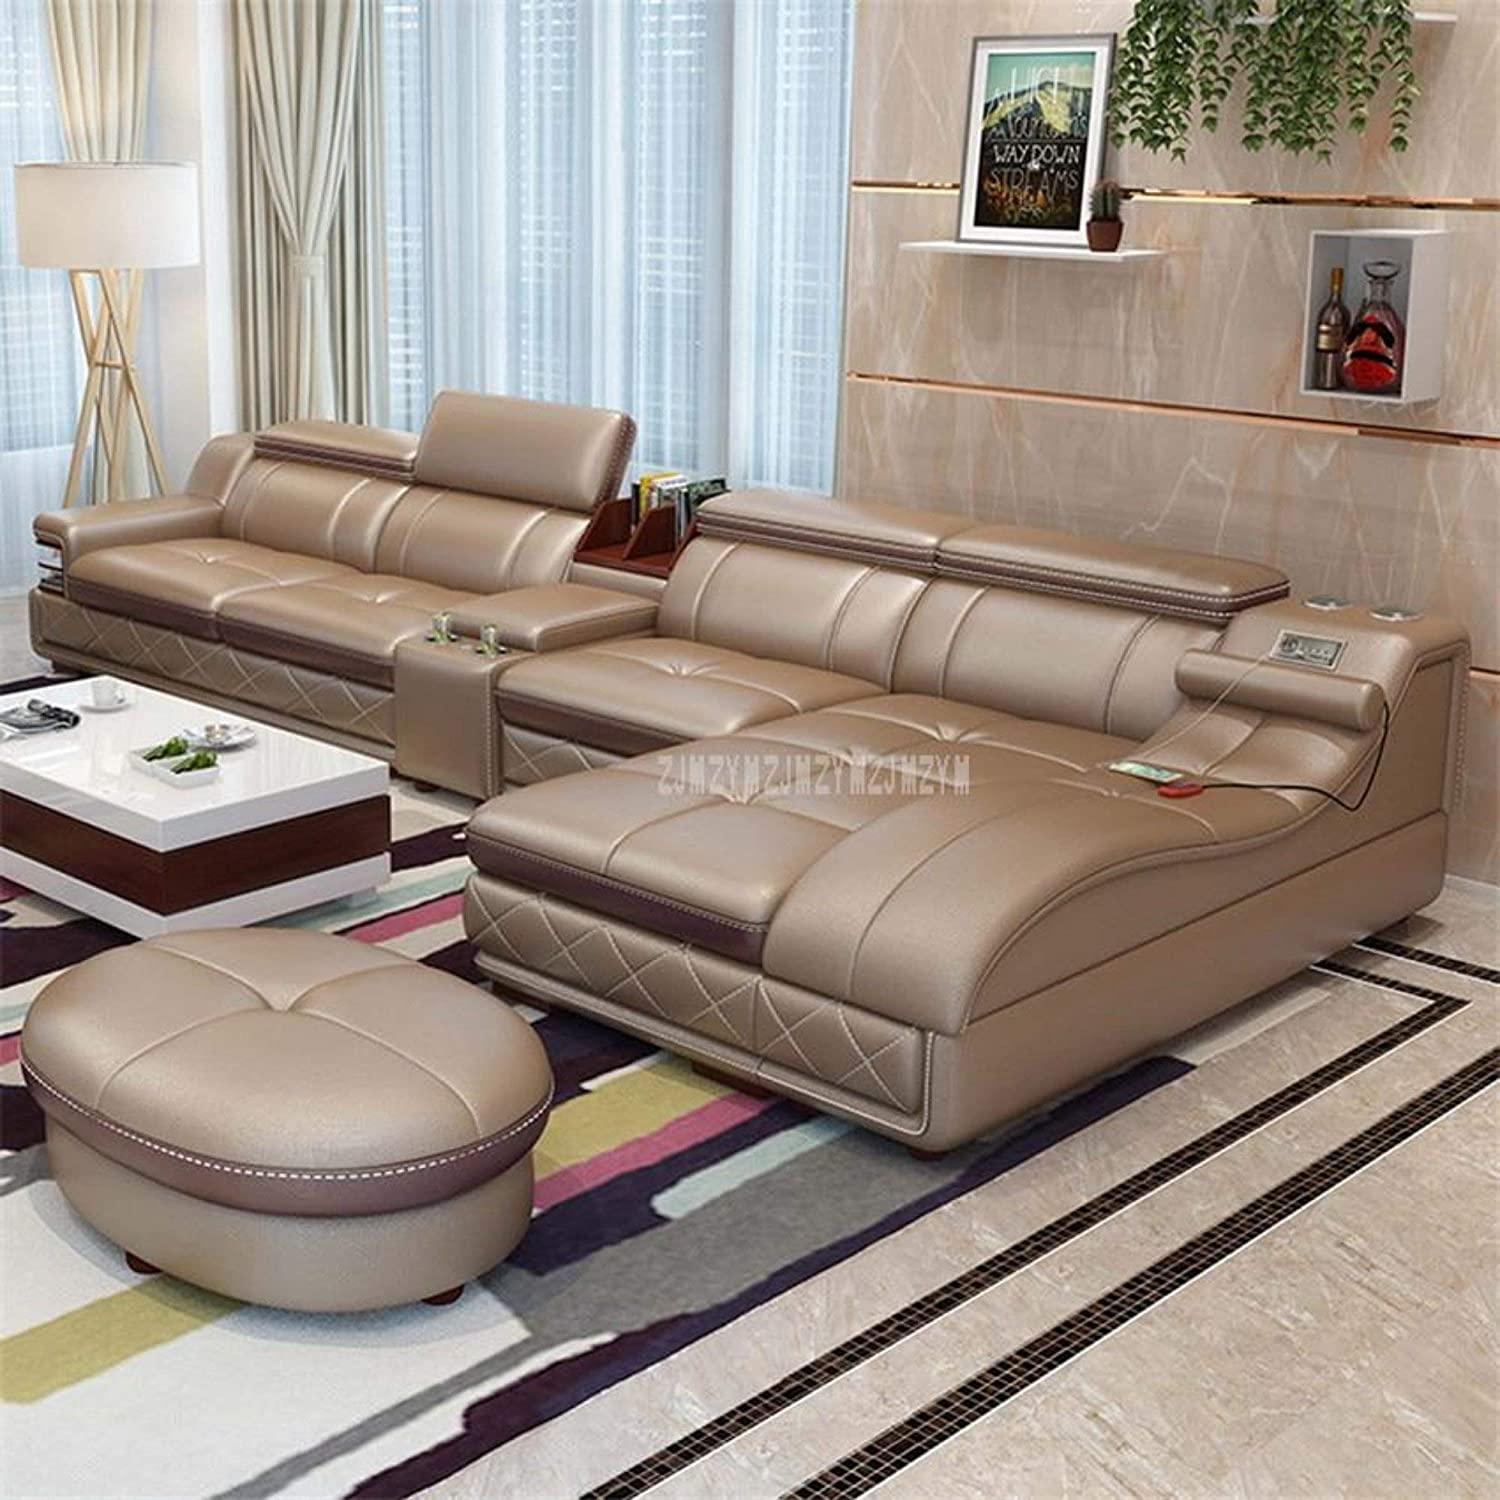 Amazon.com: My Aashis Luxury Living Room Sofa Set with Message